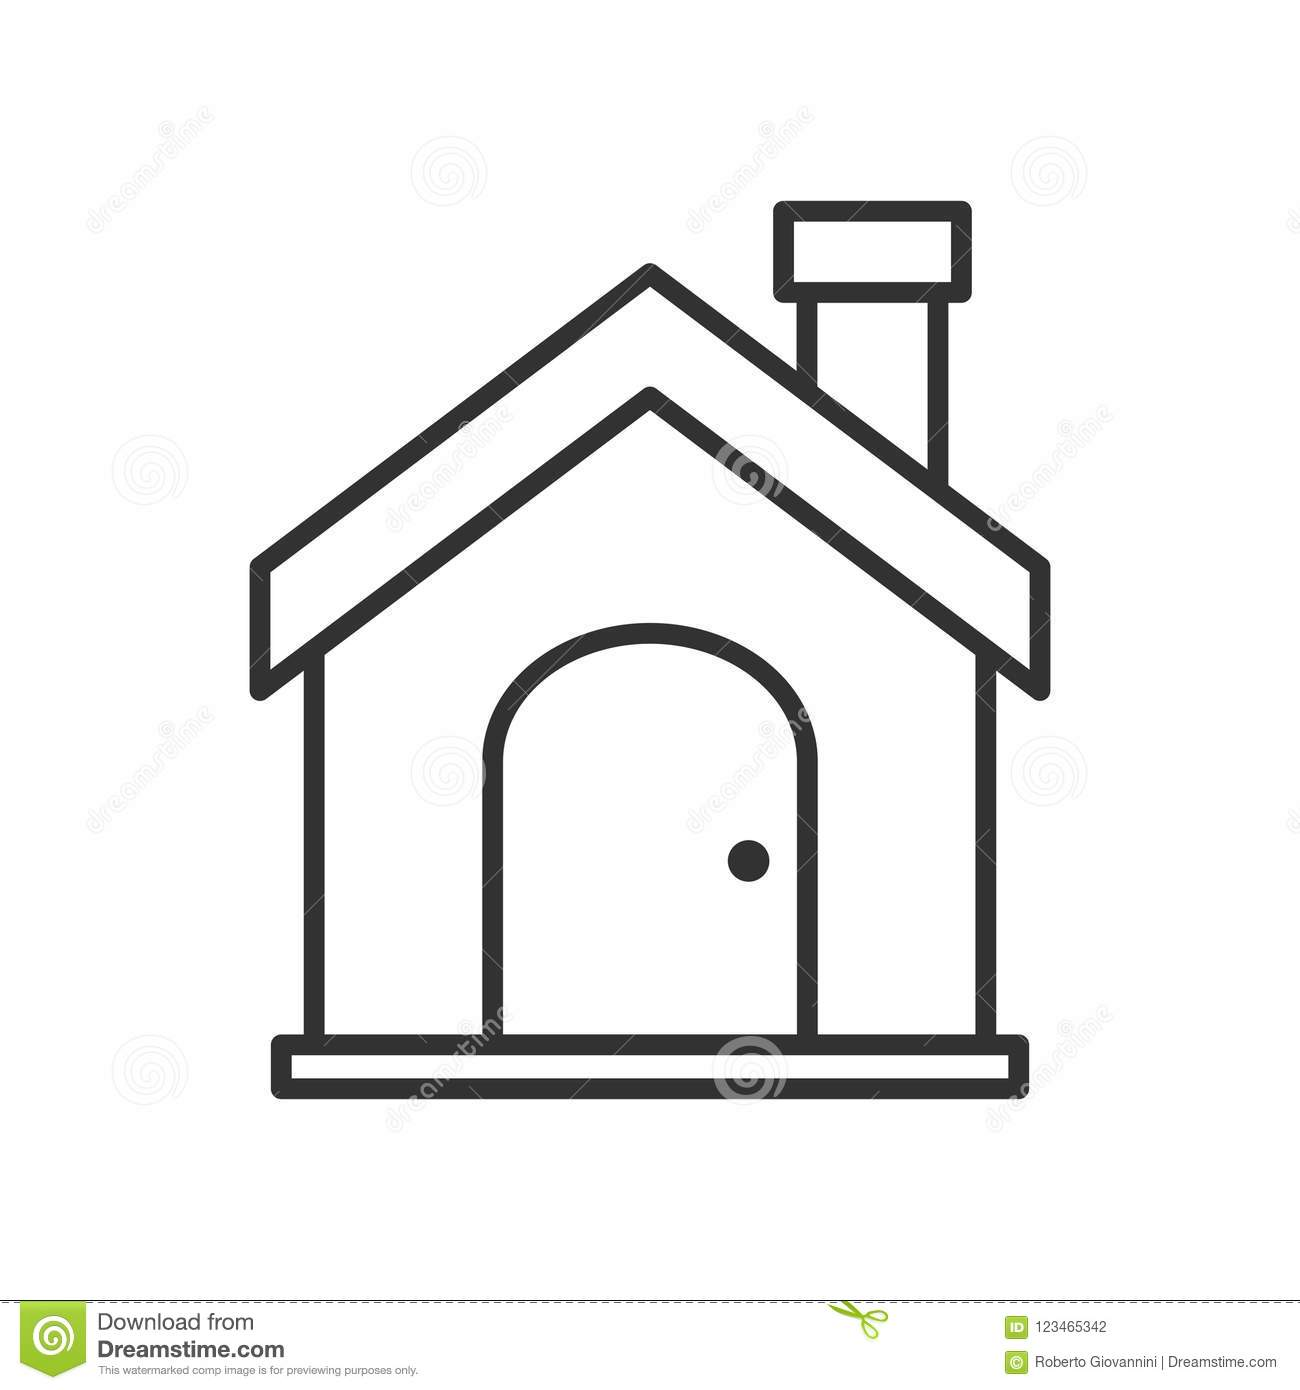 Home or House Outline Flat Icon on White